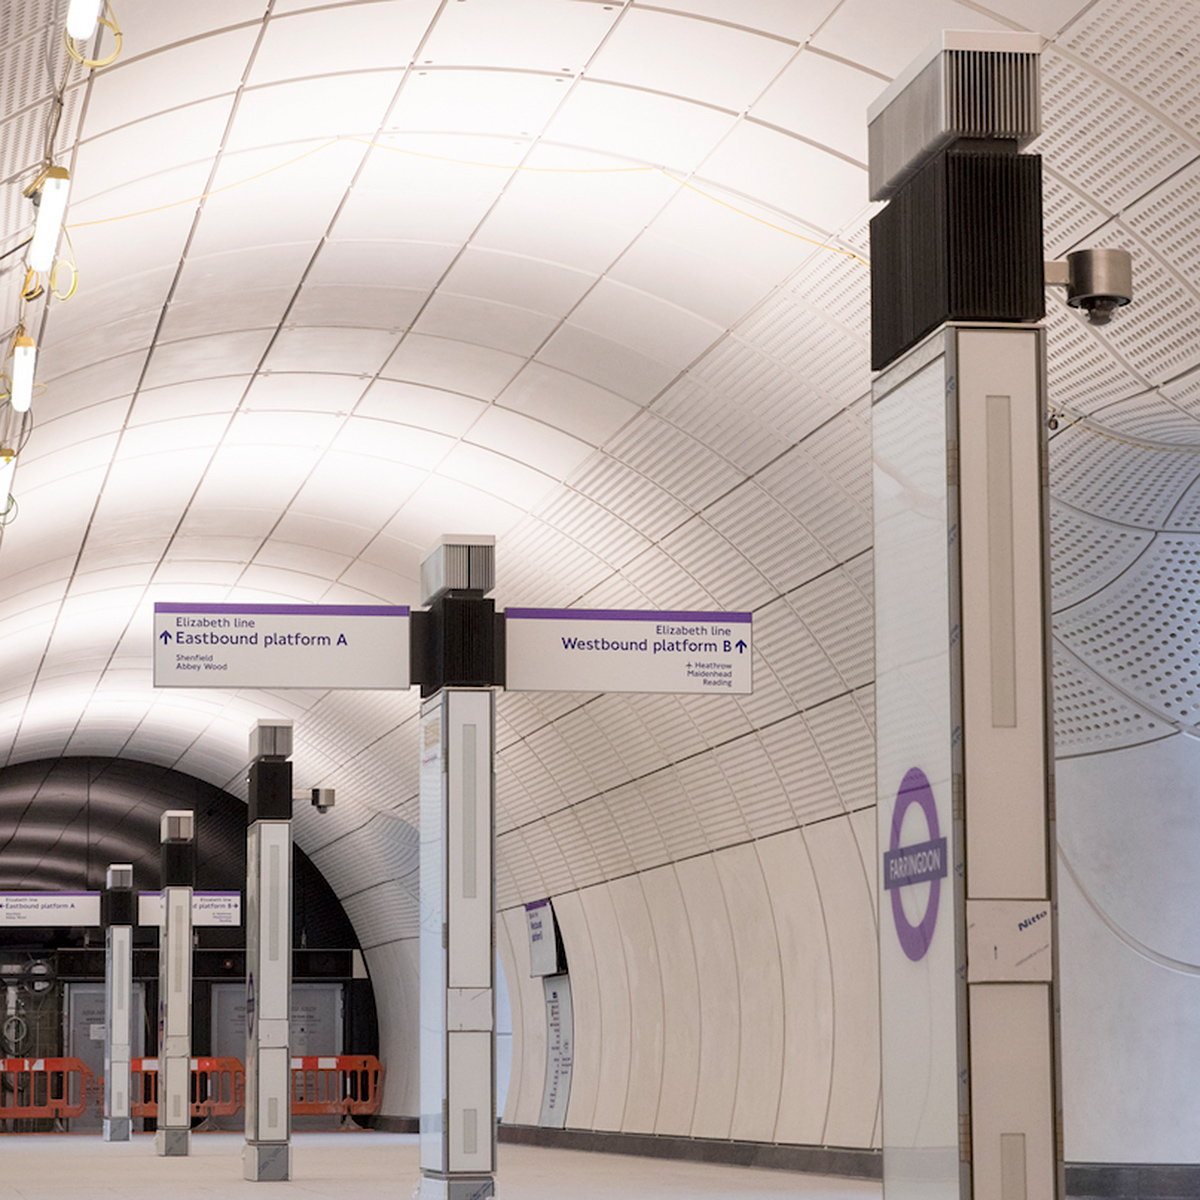 FUTURE Designs Wins Lux Award for Crossrail Lighting